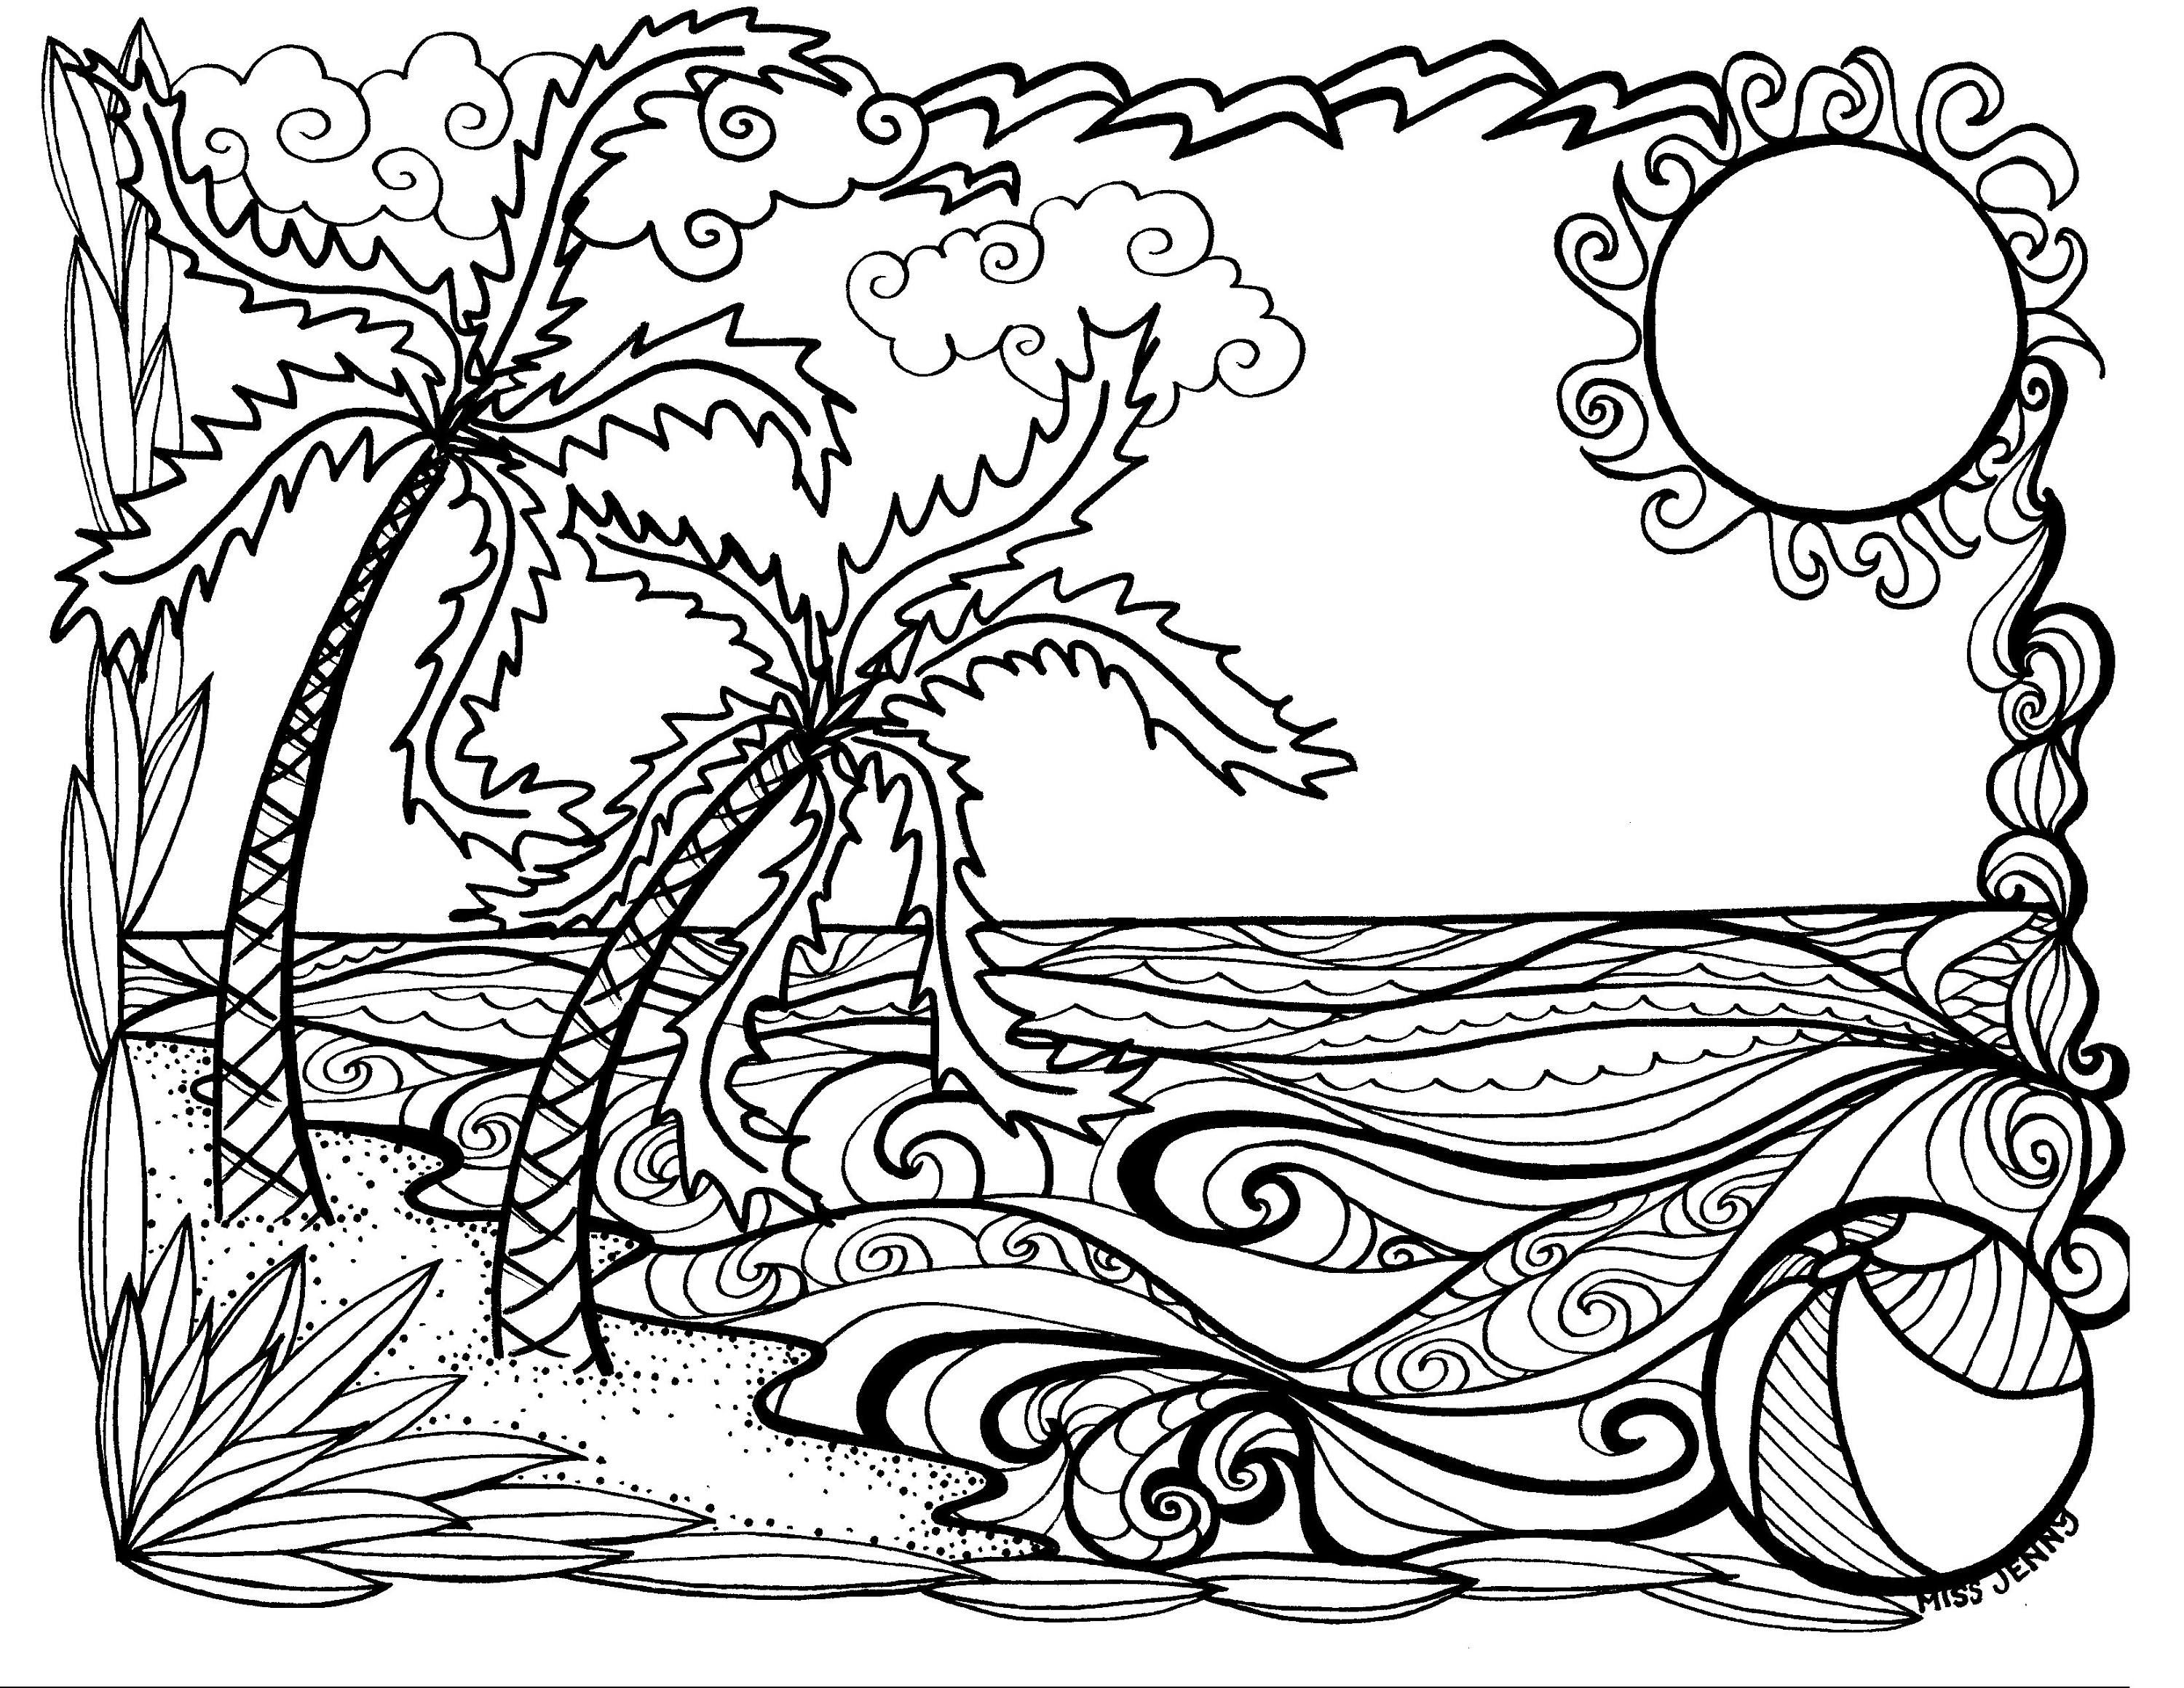 hard beach coloring pages free printable beach coloring pages for kids pages beach coloring hard